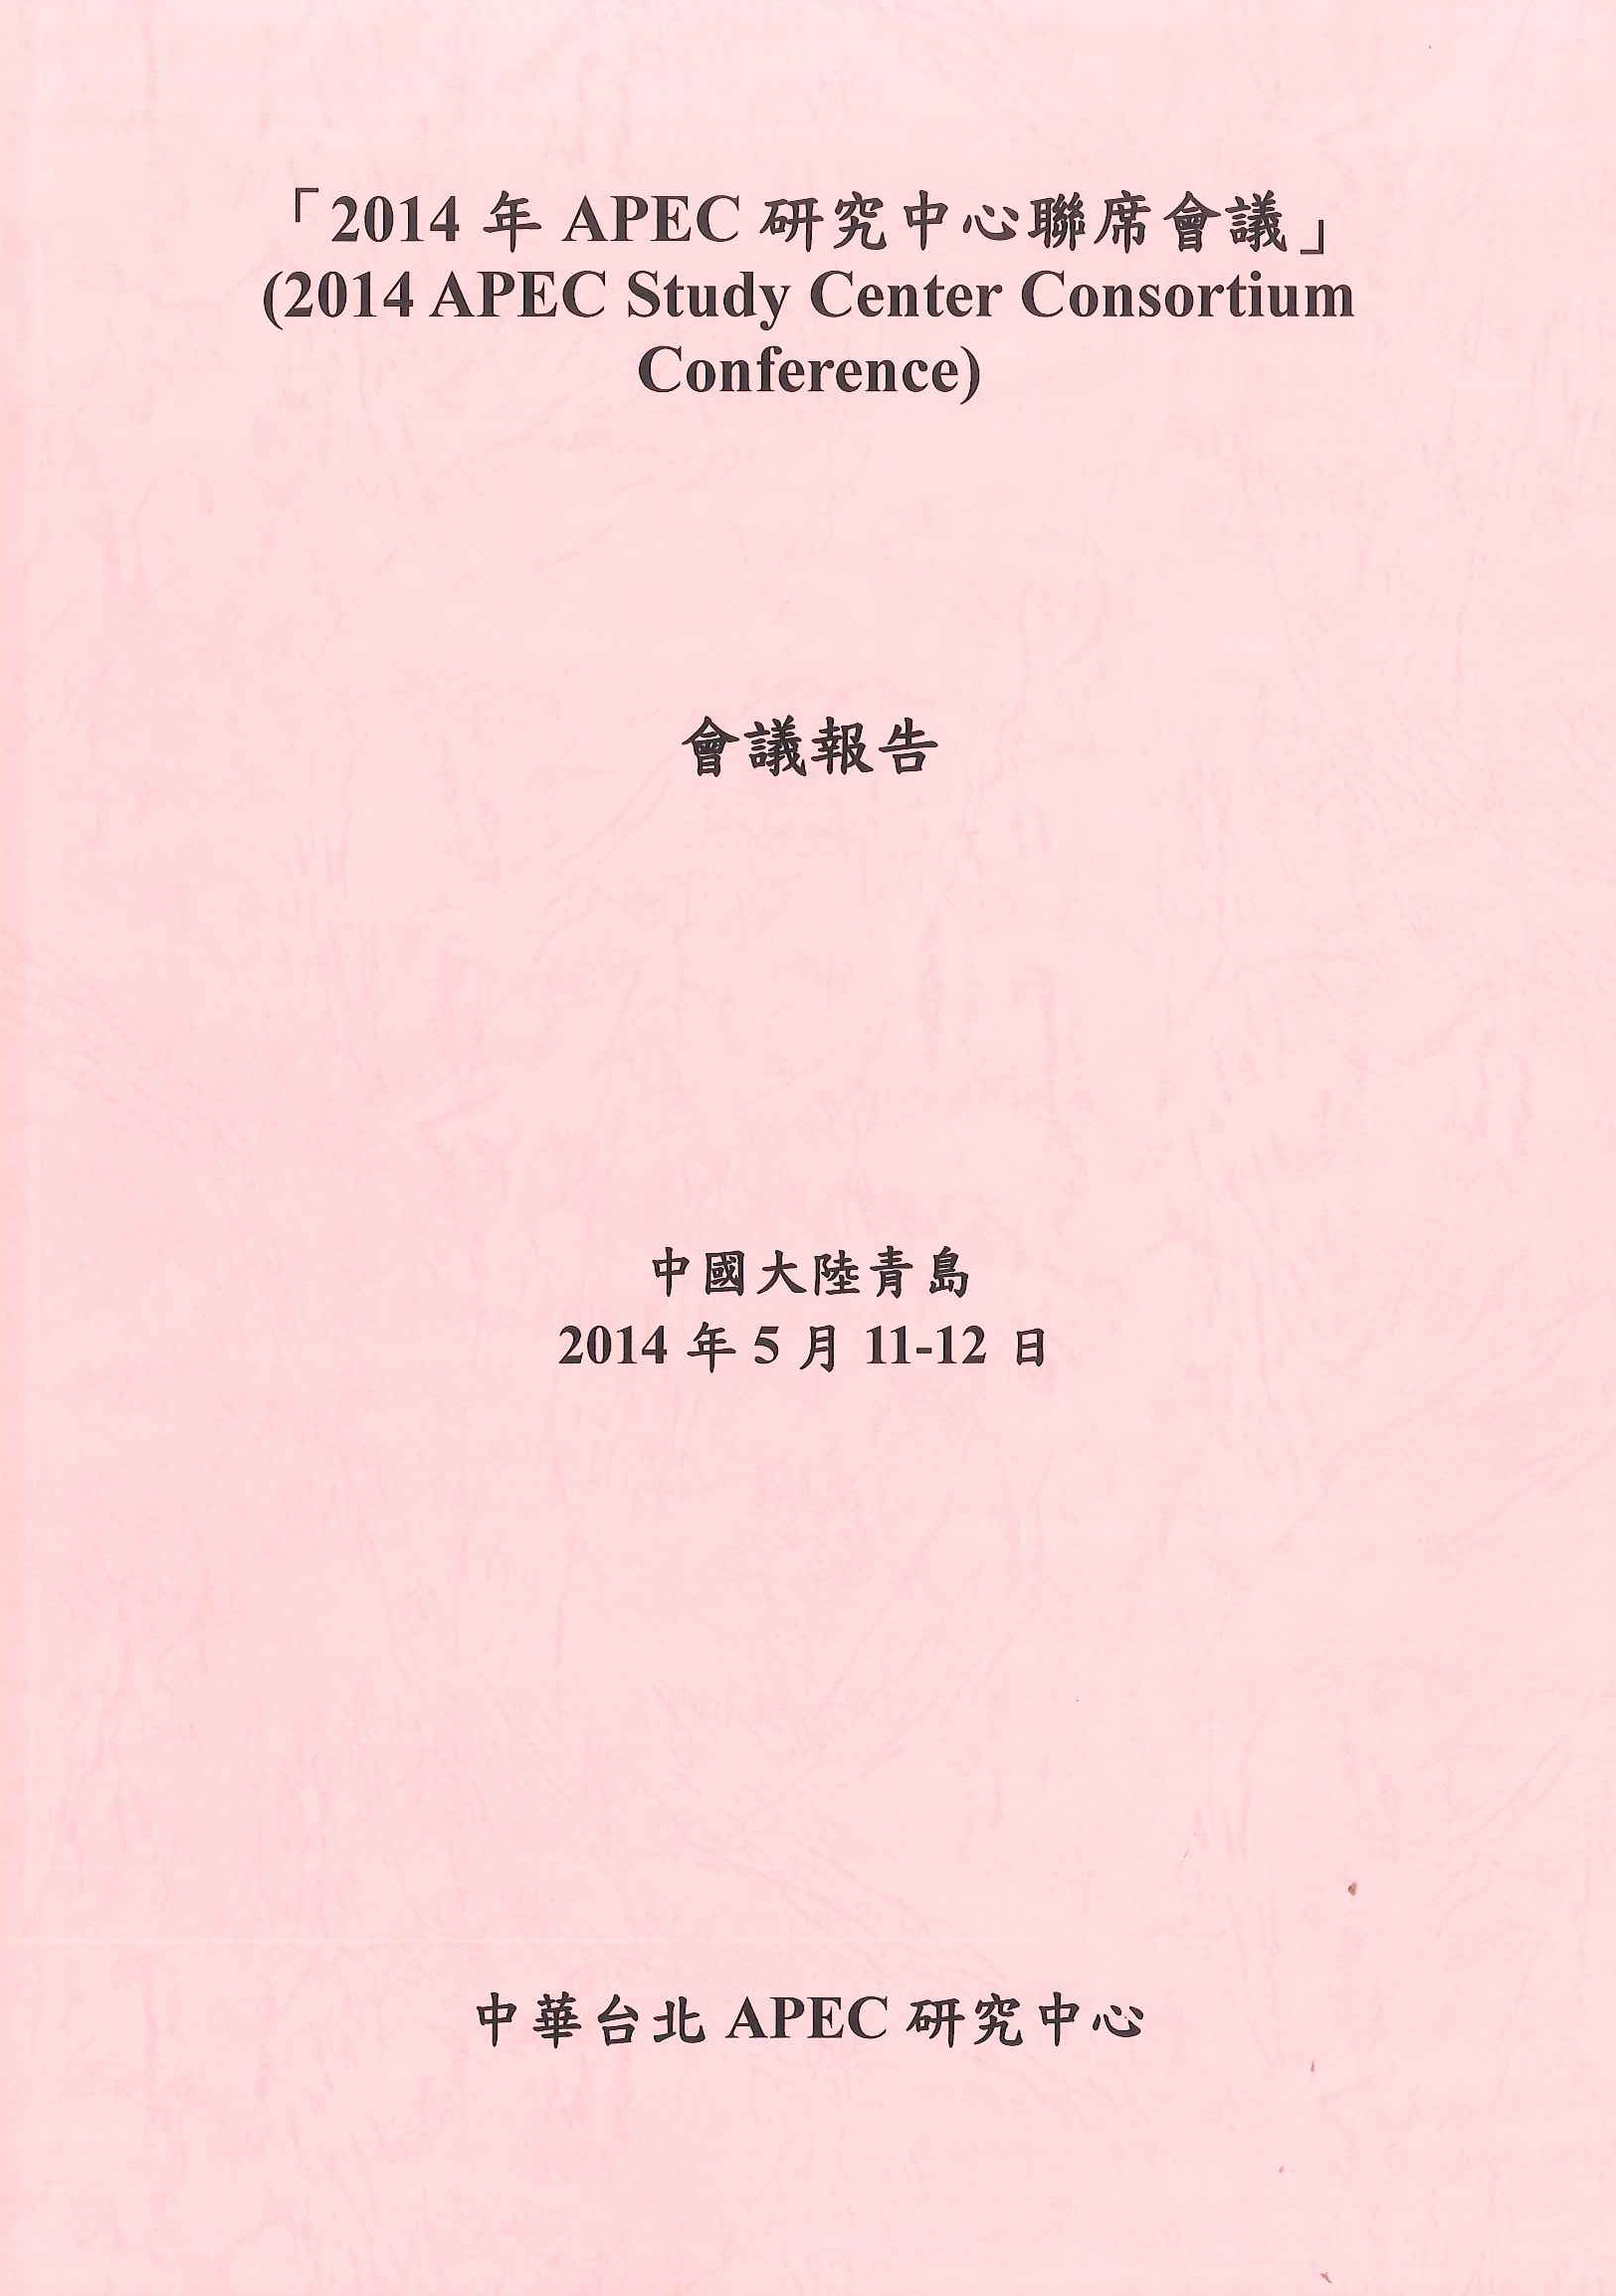 2014年APEC研究中心聯席會議會議報告=2014 APEC study center consortium conference